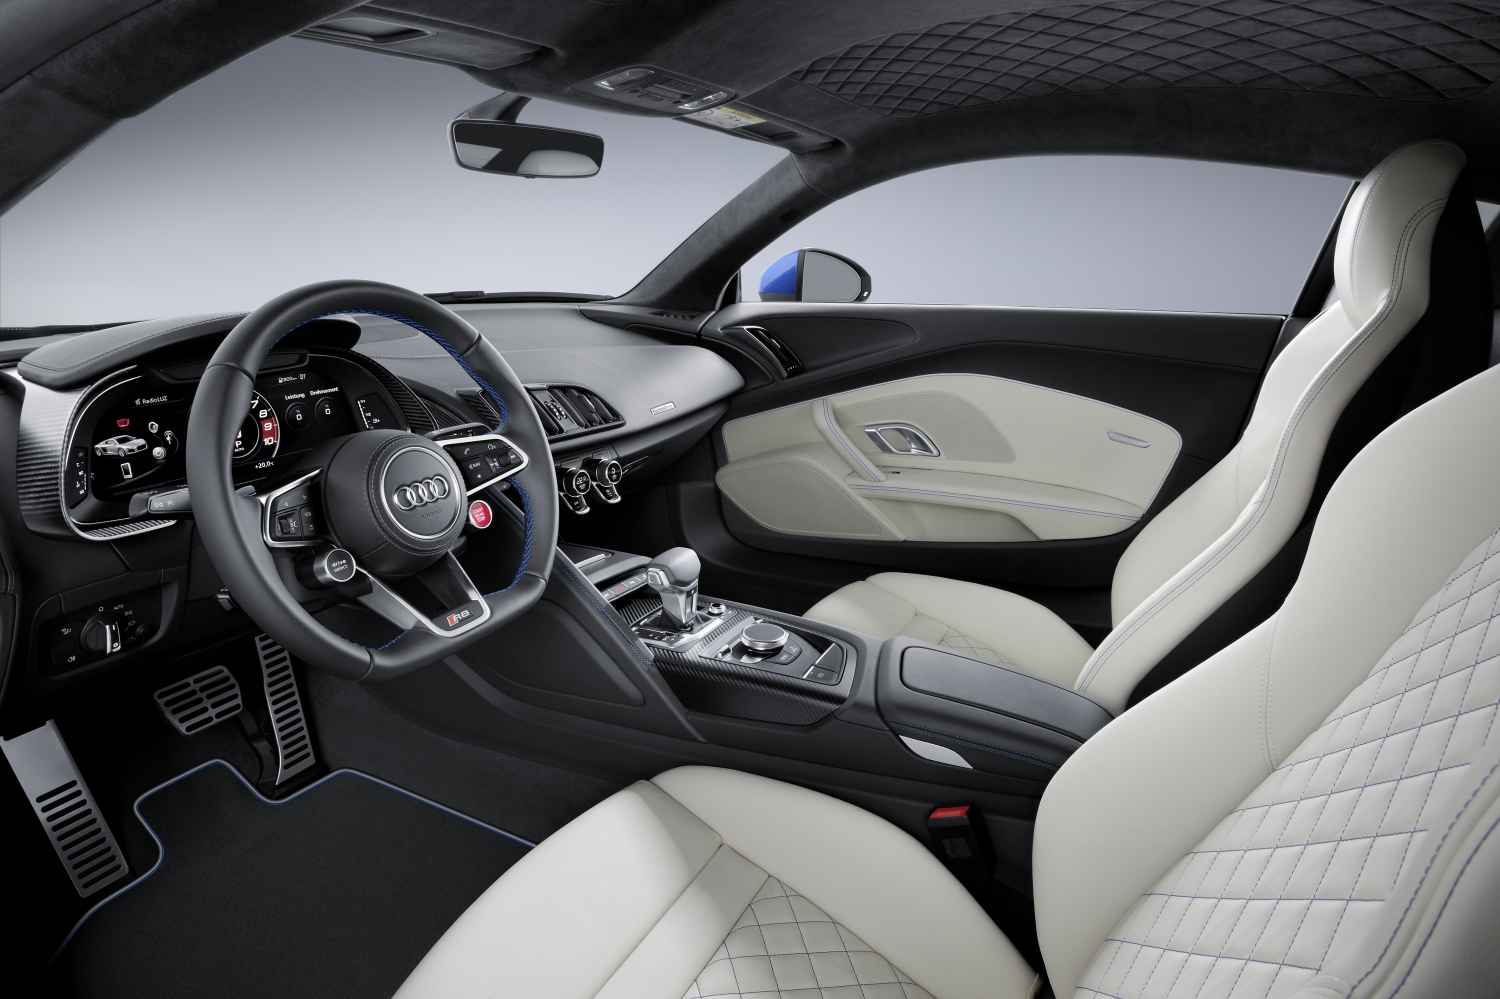 Attractive Interior Of The Audi R8